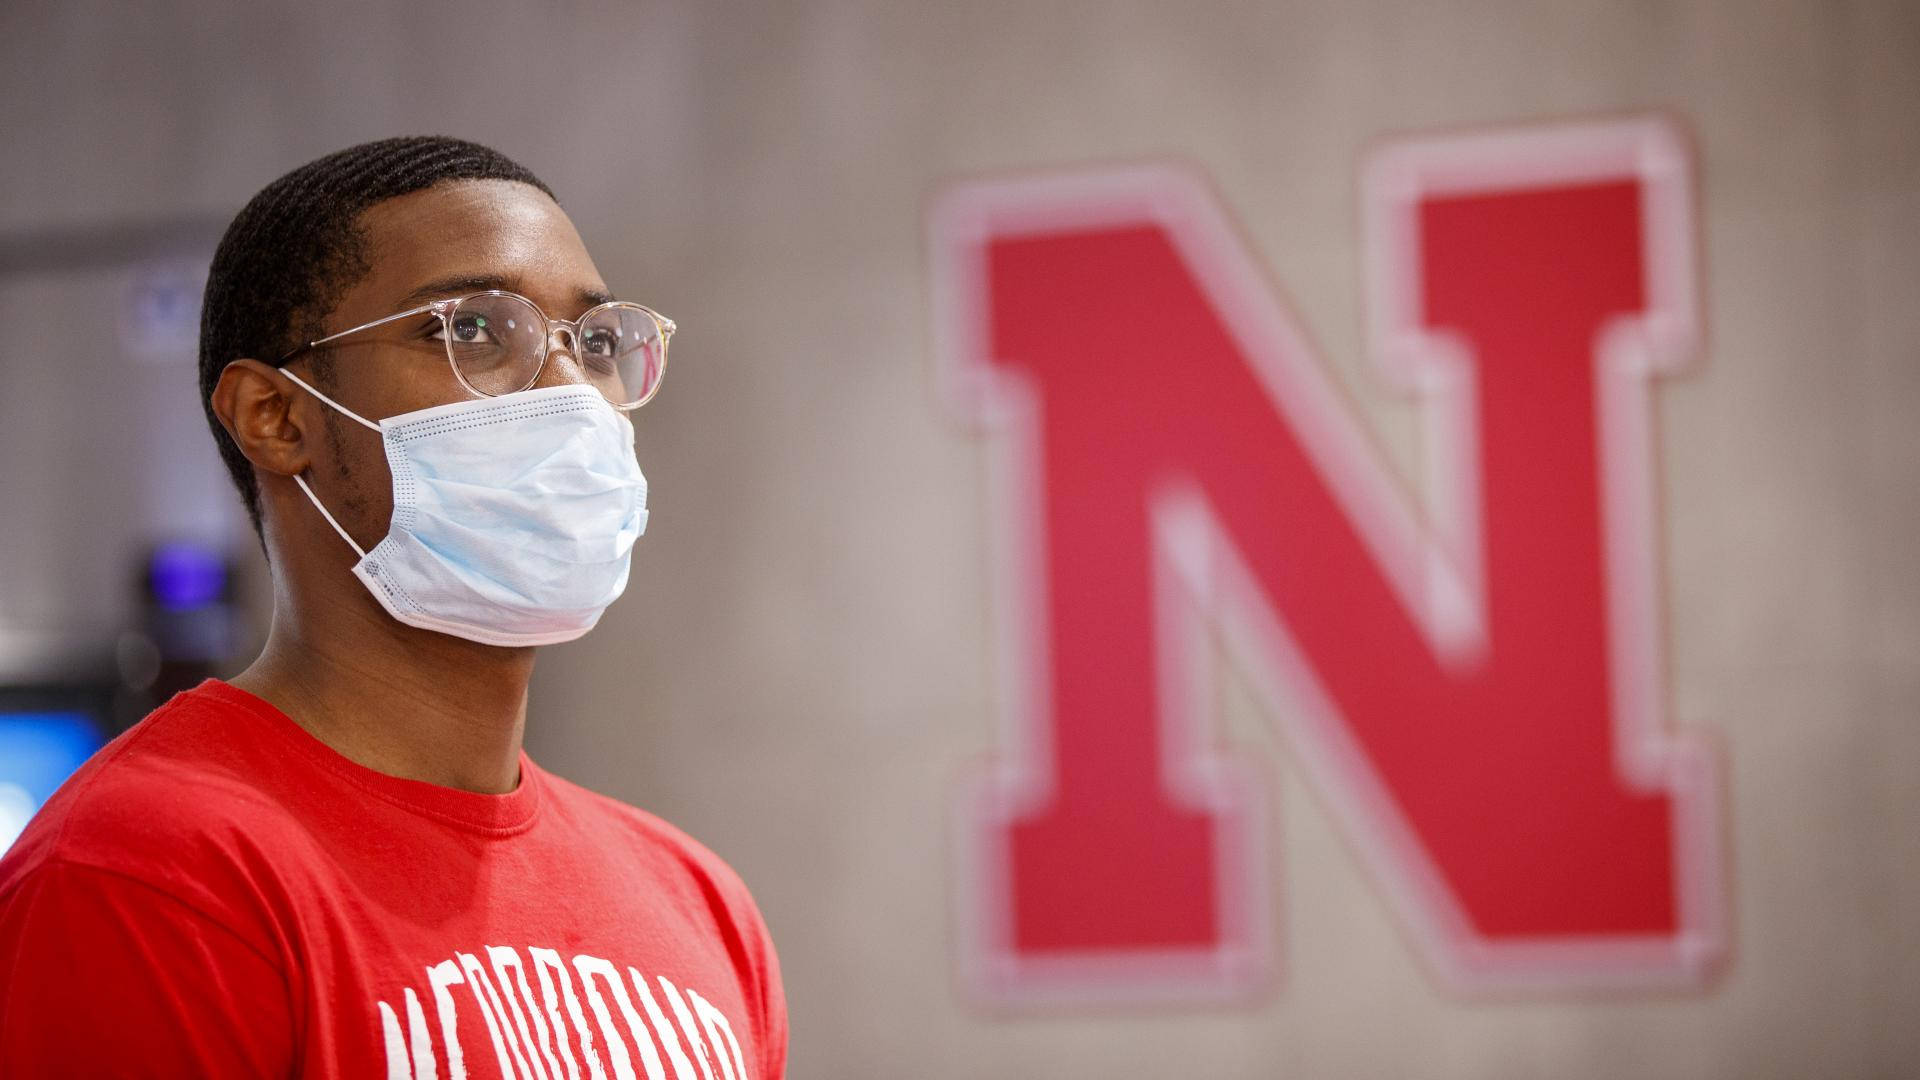 Husker student wears a face mask on campus in fall 2020.